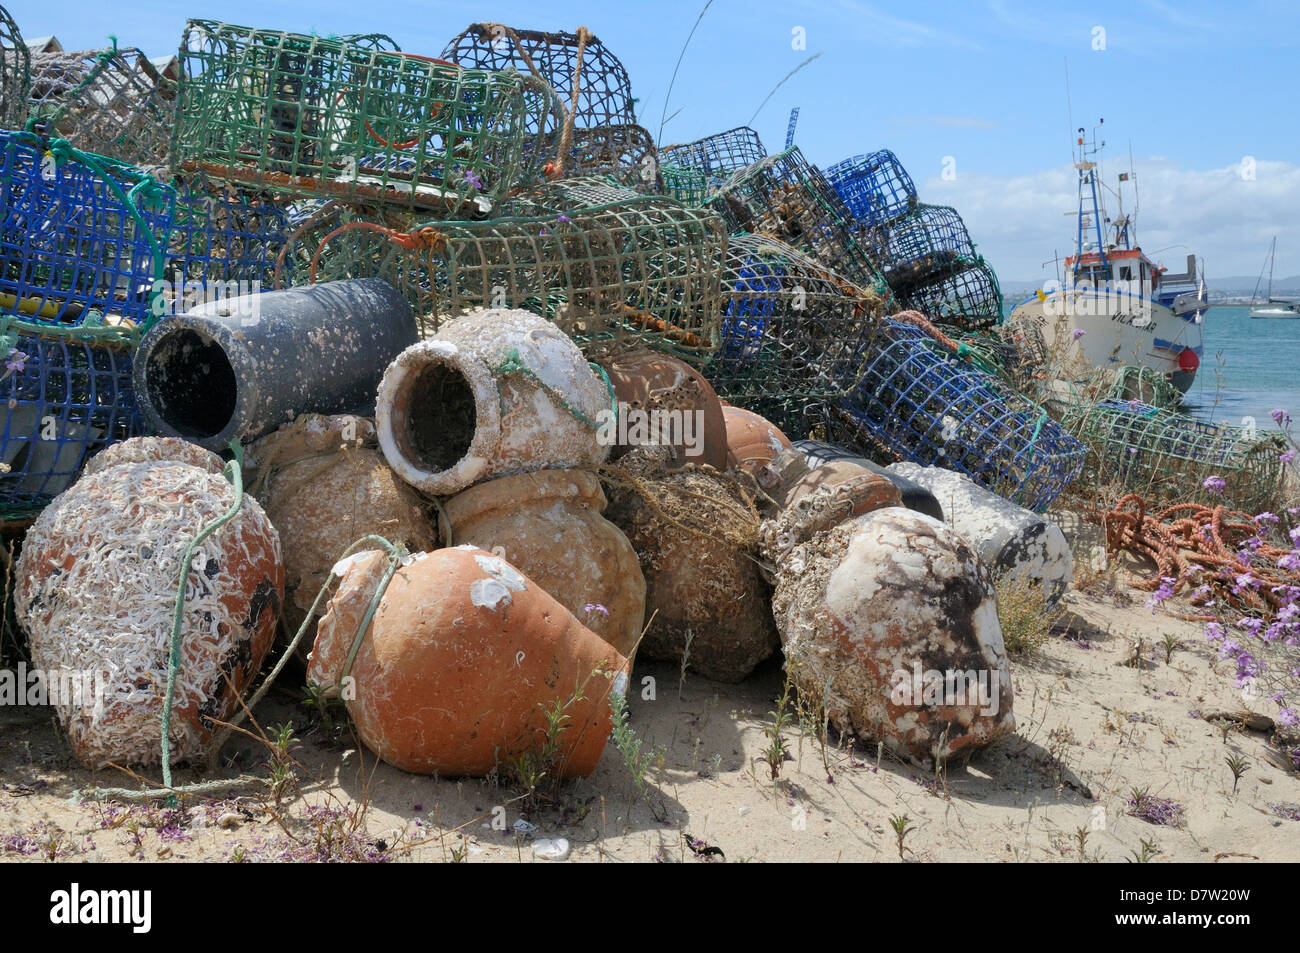 Stack of lobster pots and ceramic octopus pots on Culatra island, Parque Natural da Ria Formosa, near Olhao, Algarve, - Stock Image